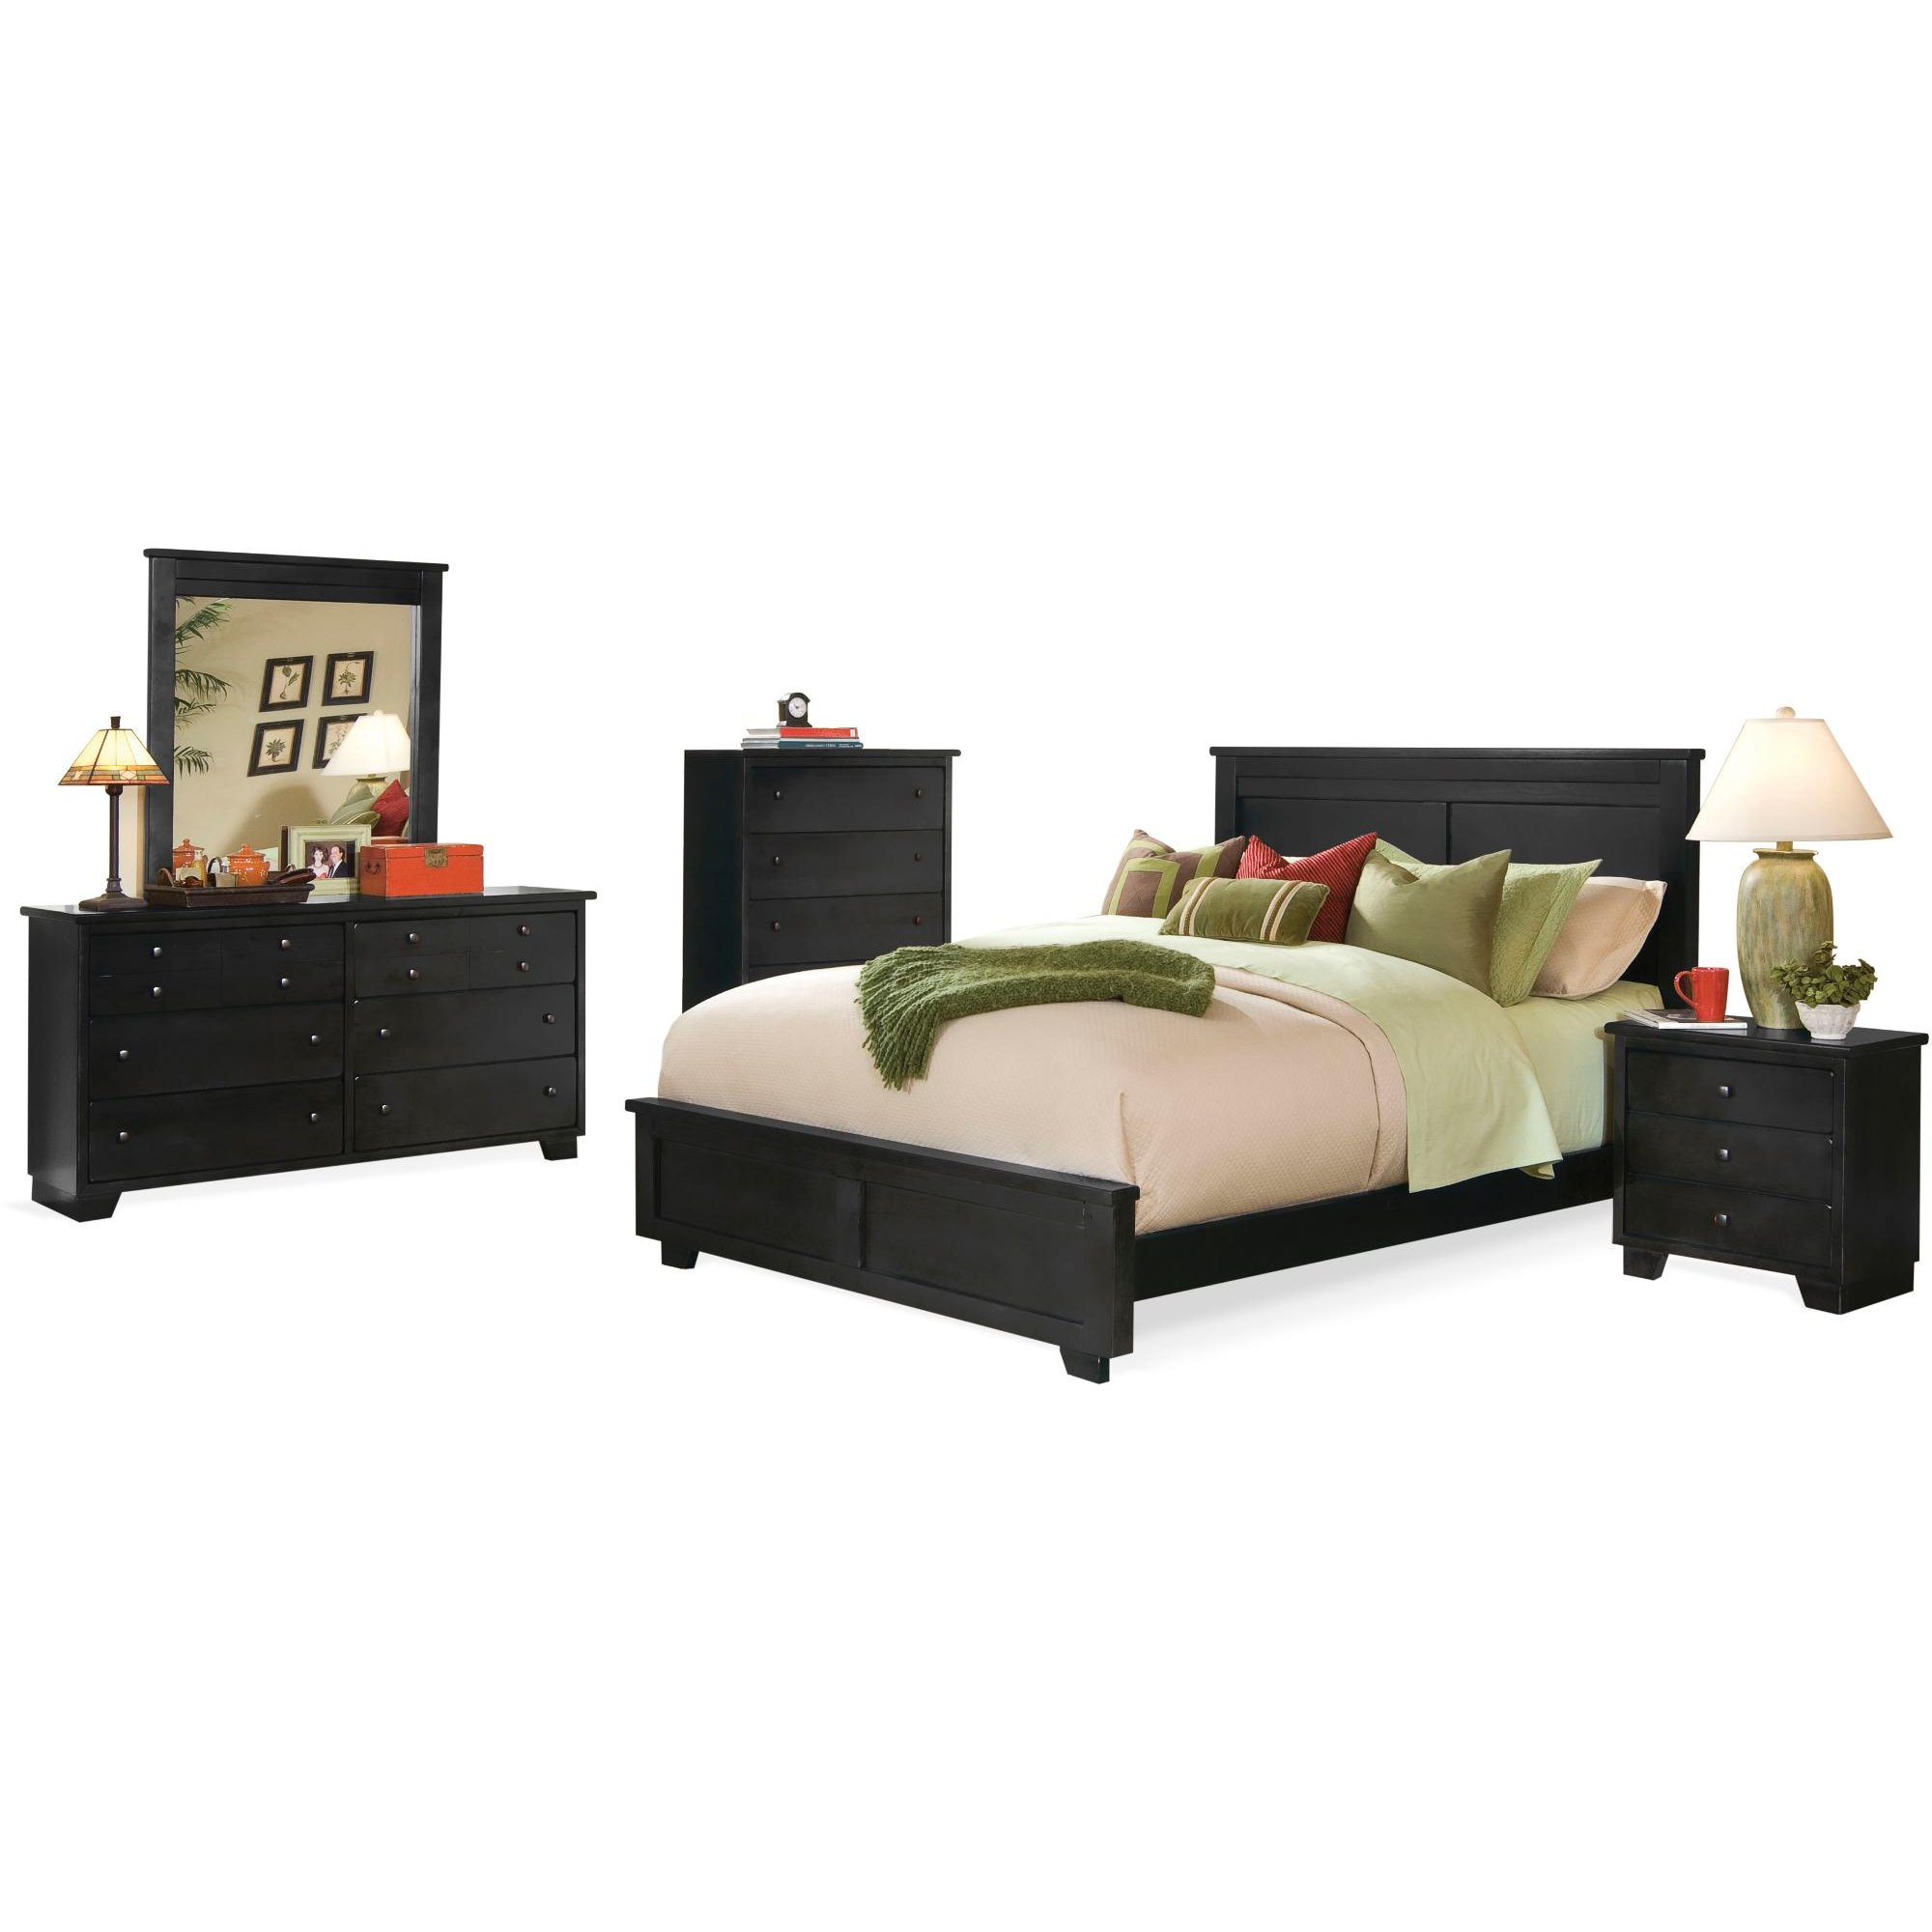 Black Casual Contemporary 6 Piece King Bedroom Set   Diego. King size bed  king size bed frame   king bedroom sets   RC Willey